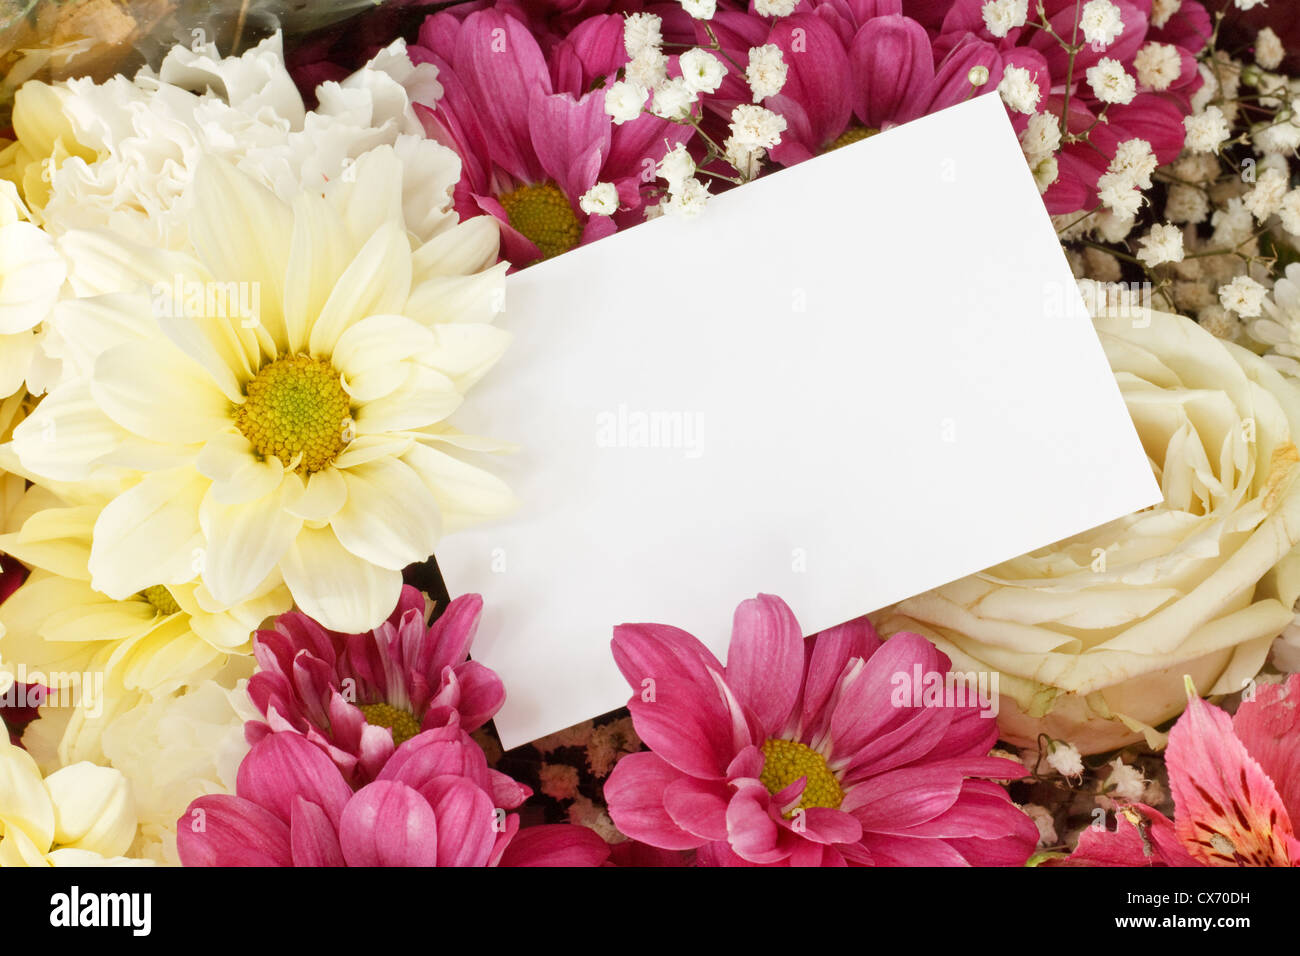 Chrysanthemum floral bouquet frame with blank greeting card to chrysanthemum floral bouquet frame with blank greeting card to insert your message or florists branding m4hsunfo